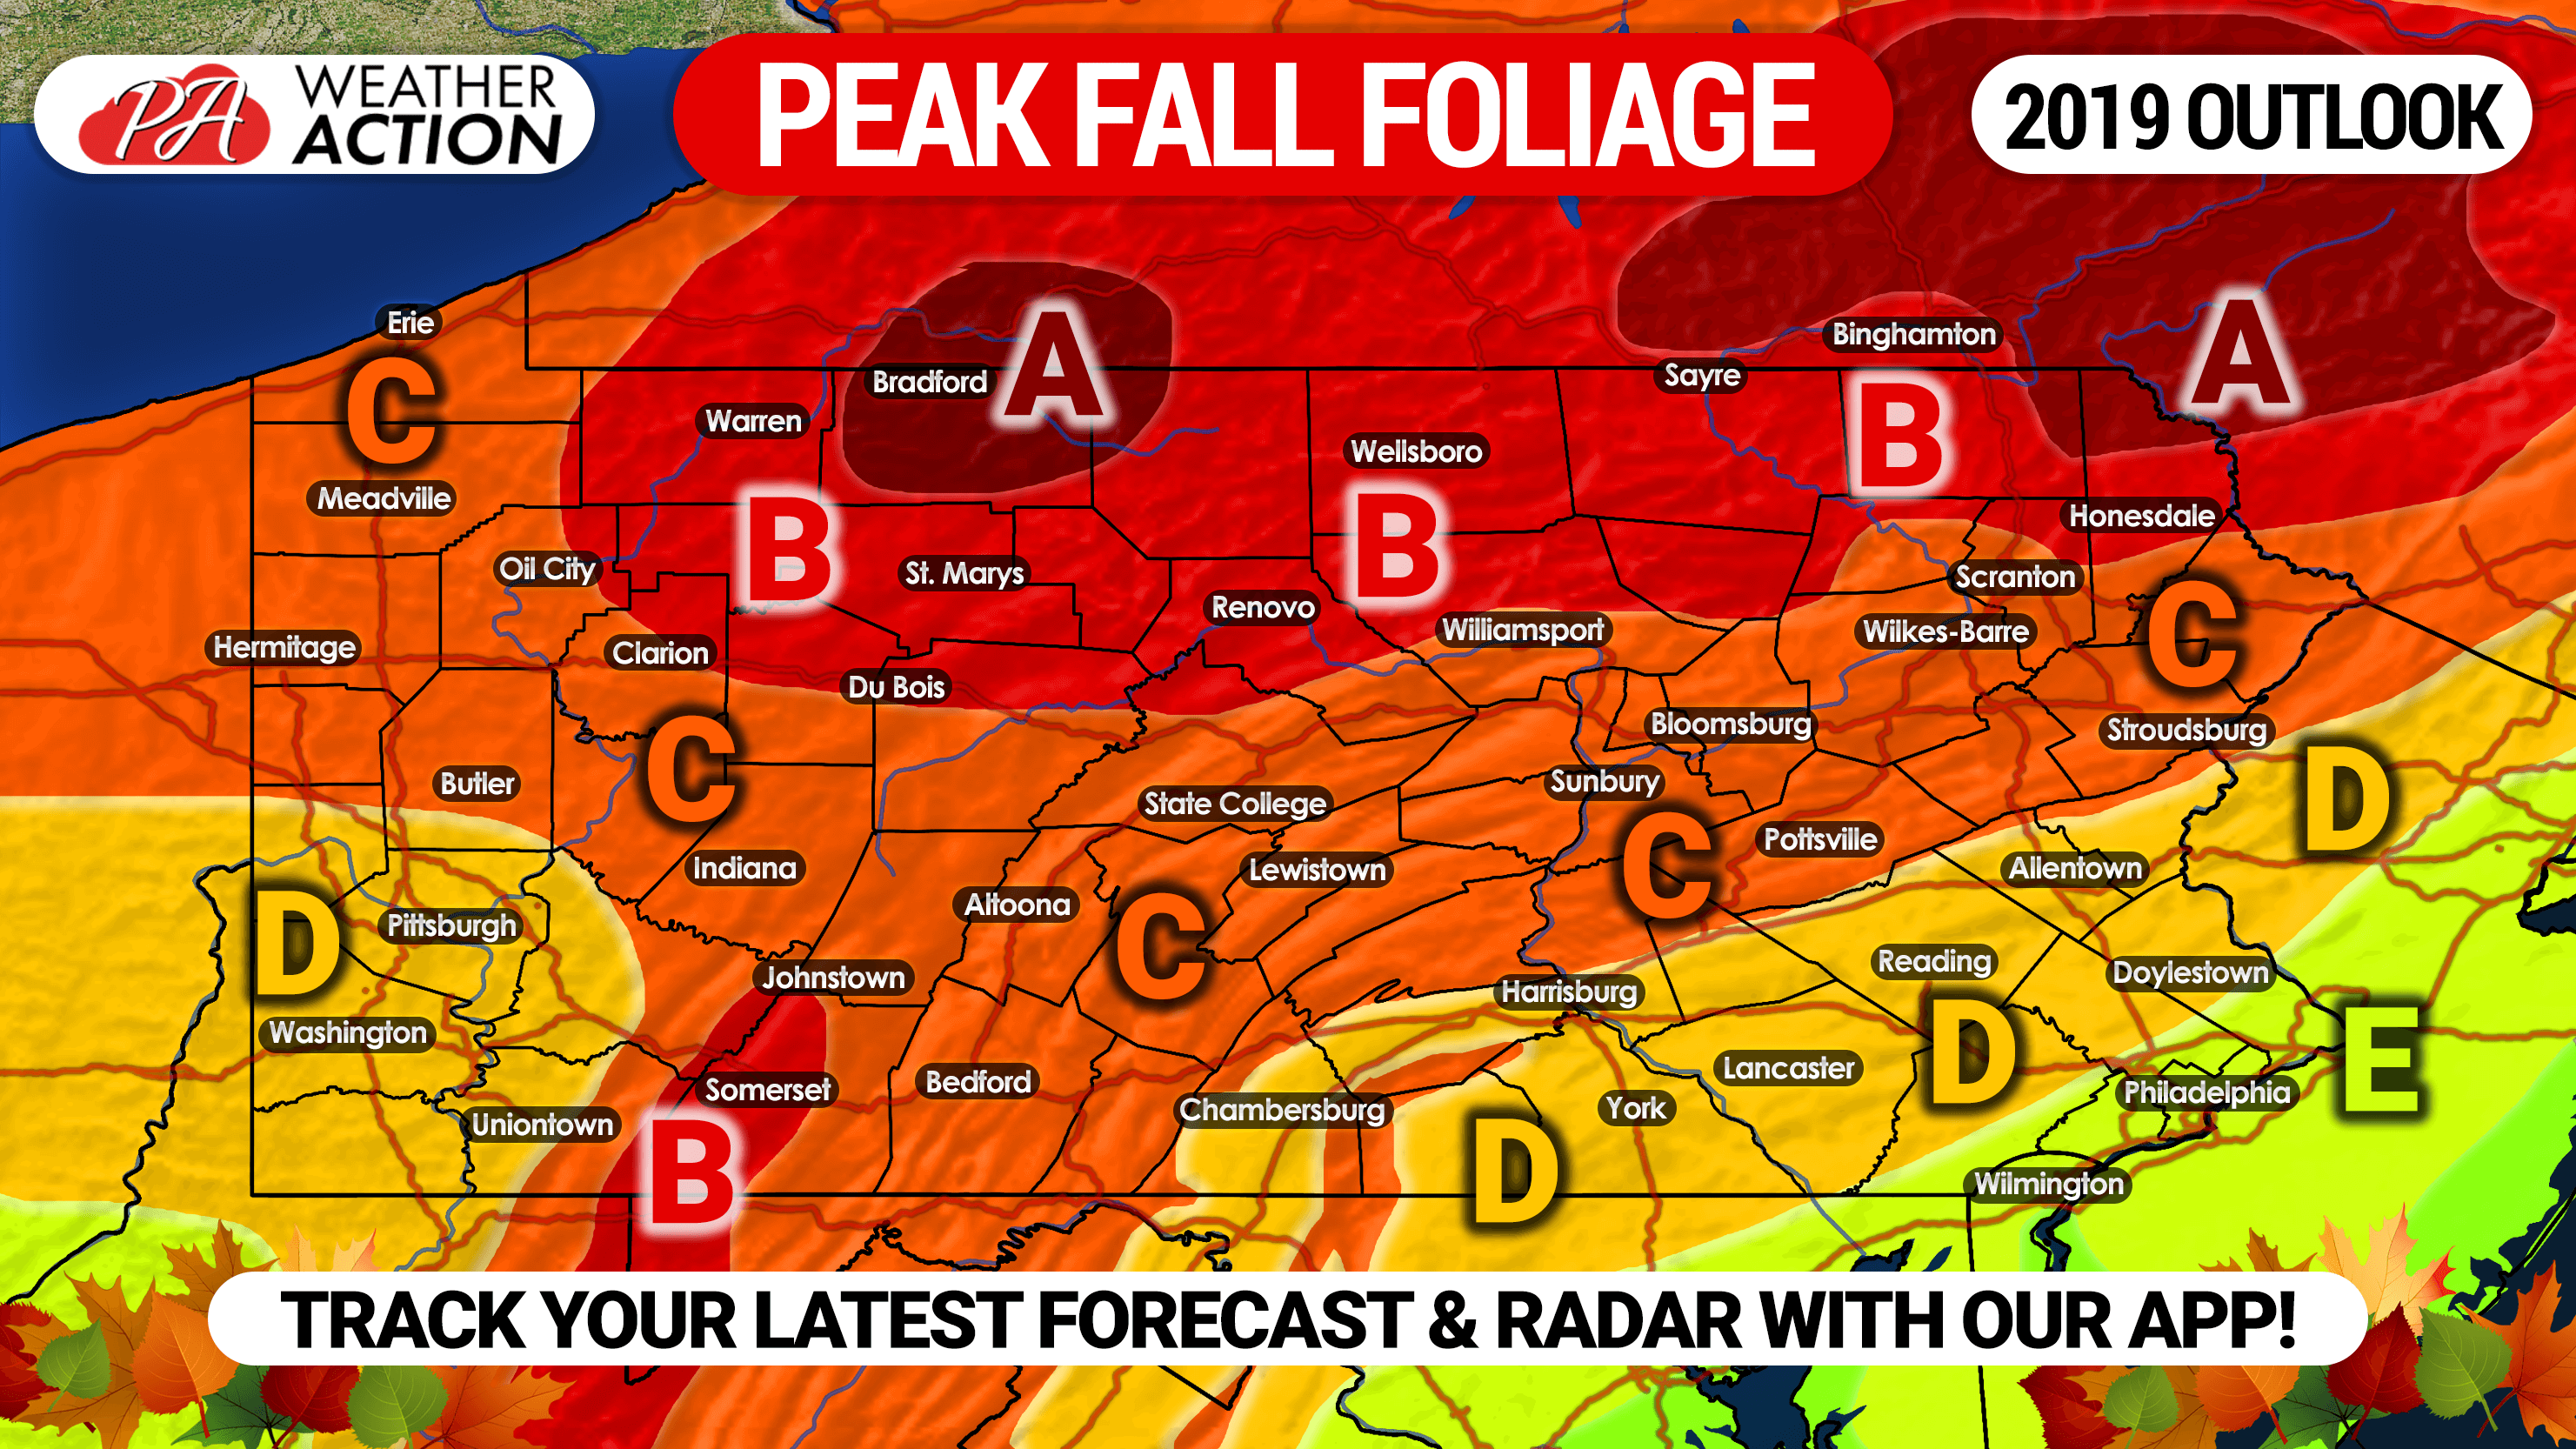 2019 Fall Foliage Outlook Expected Peak Times In Pennsylvania Pa Weather Action